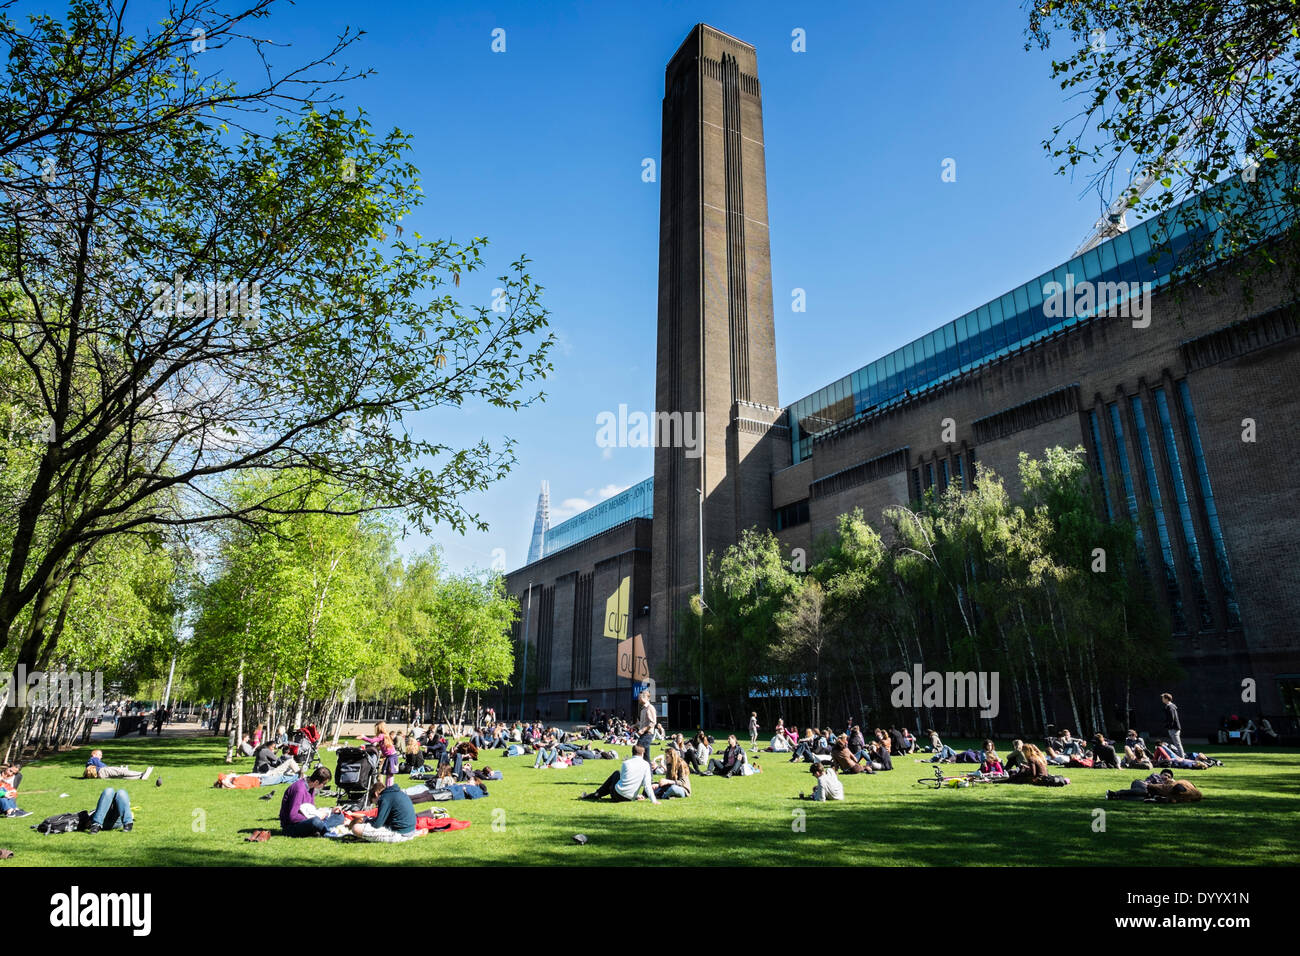 People relaxing in park in front of Tate Modern art gallery in London United Kingdom - Stock Image